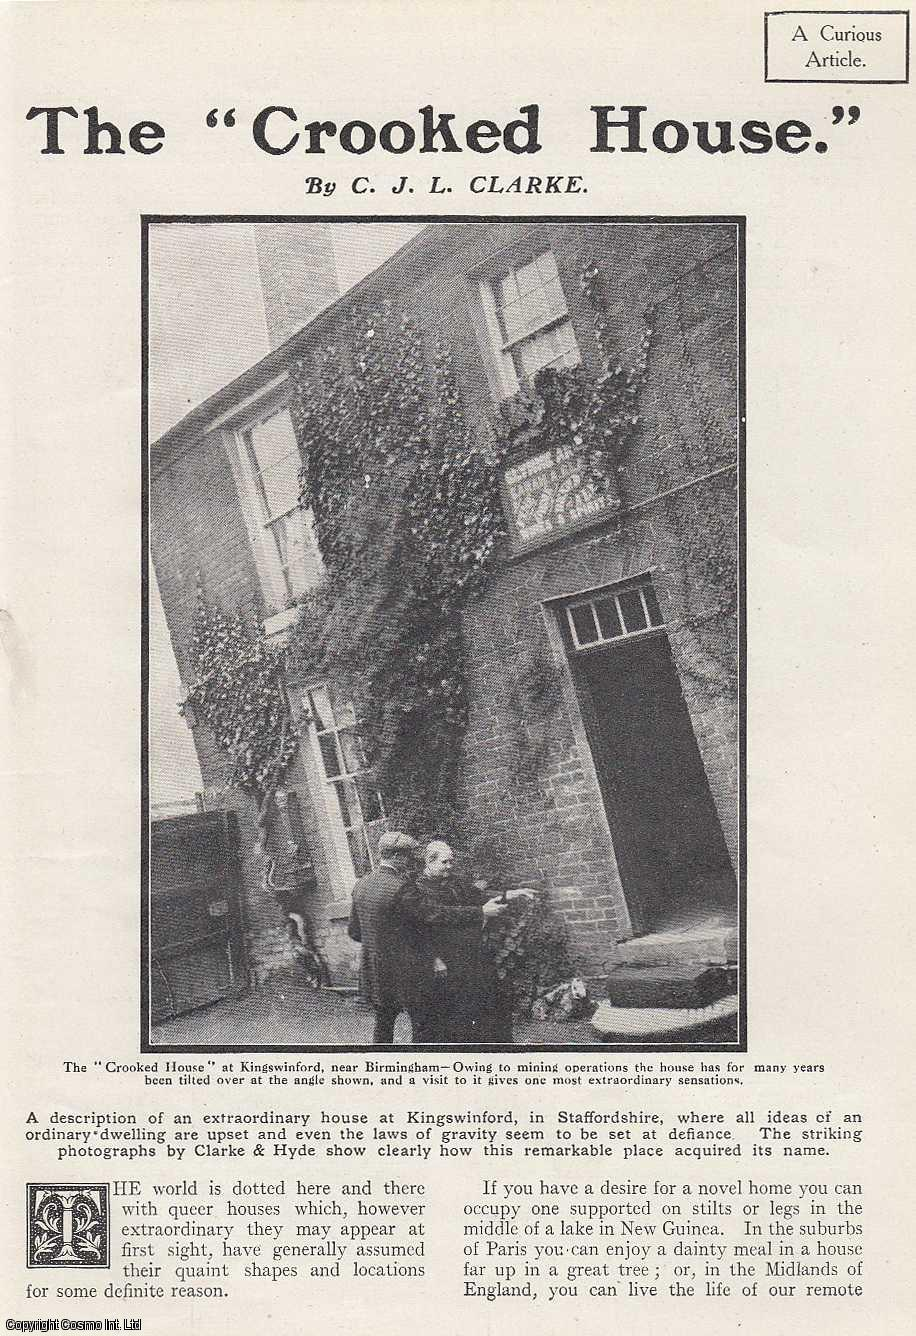 CLARKE, C. J. L. - The Crooked House, Kingswinford, Birmingham. 1914. This is an original article from the Wide World Magazine.